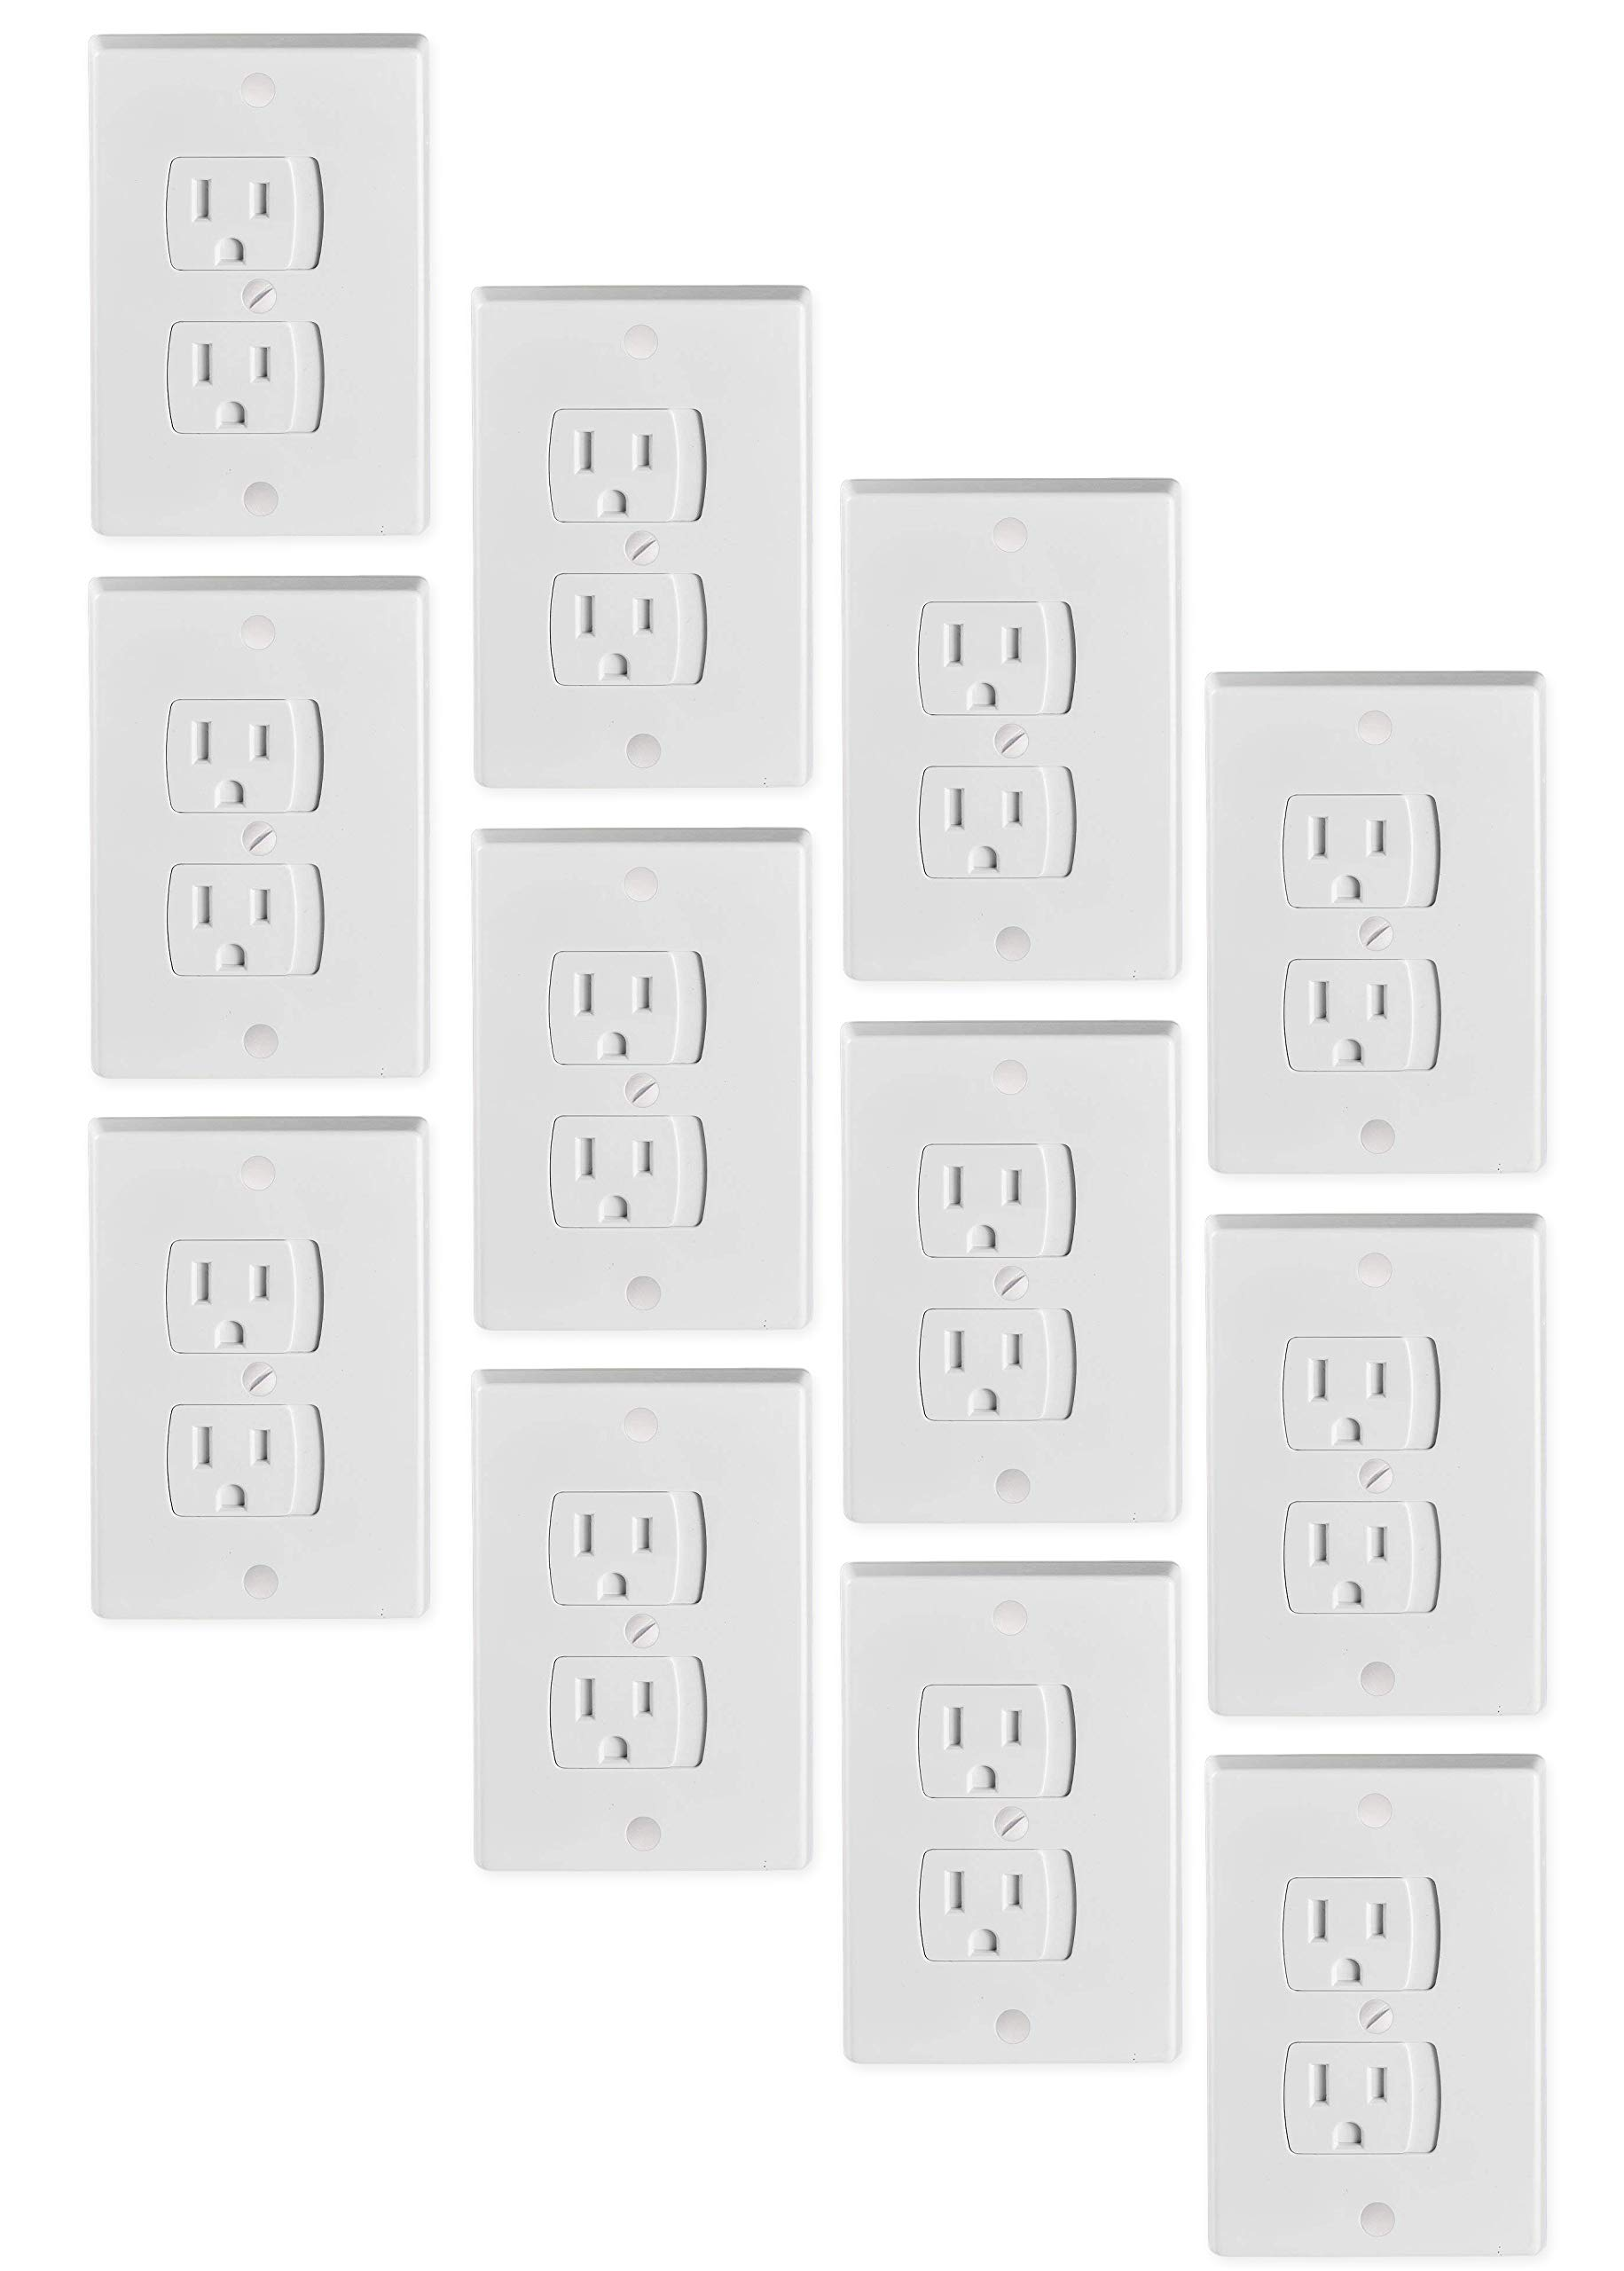 Tiger Chef Universal White 12-Pack Self-Closing Electrical Light Switch Outlet Covers Plate, Baby Proofing Child Safet6 by Tiger Chef (Image #1)